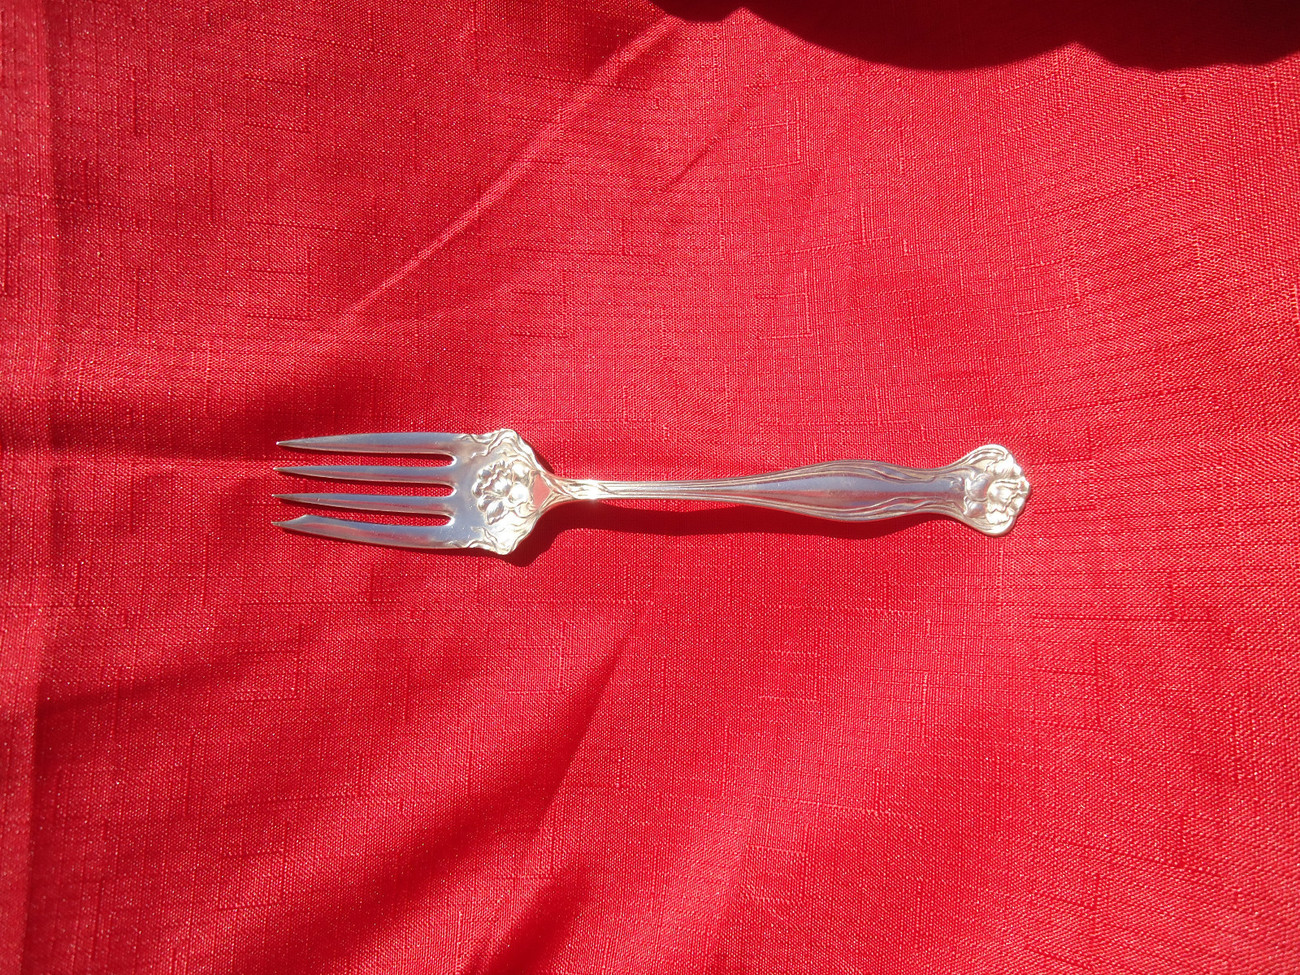 Primary image for MYSTIC Pattern  -  1903  -  Rogers Bros. Meat Serving Fork  8 1/4""